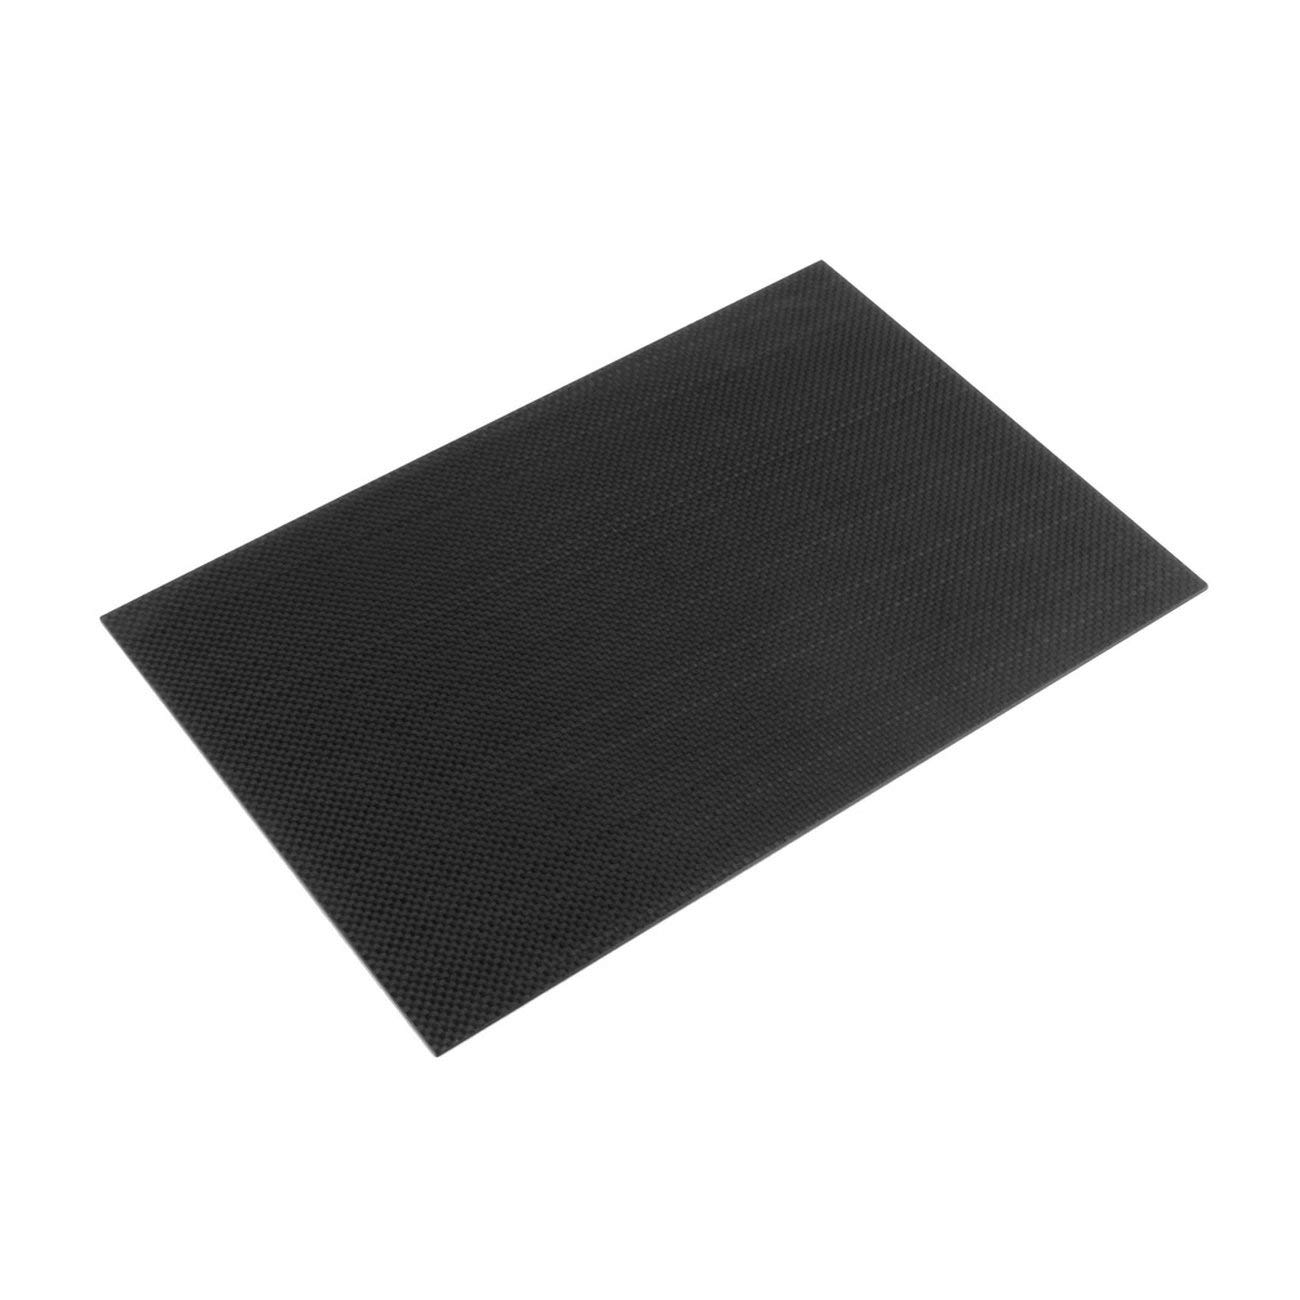 Panel de placa de fibra de carbono de 2, 0 * 200 * 300 mm. Superficie de brillo liso 3K. Jiobapiongxin